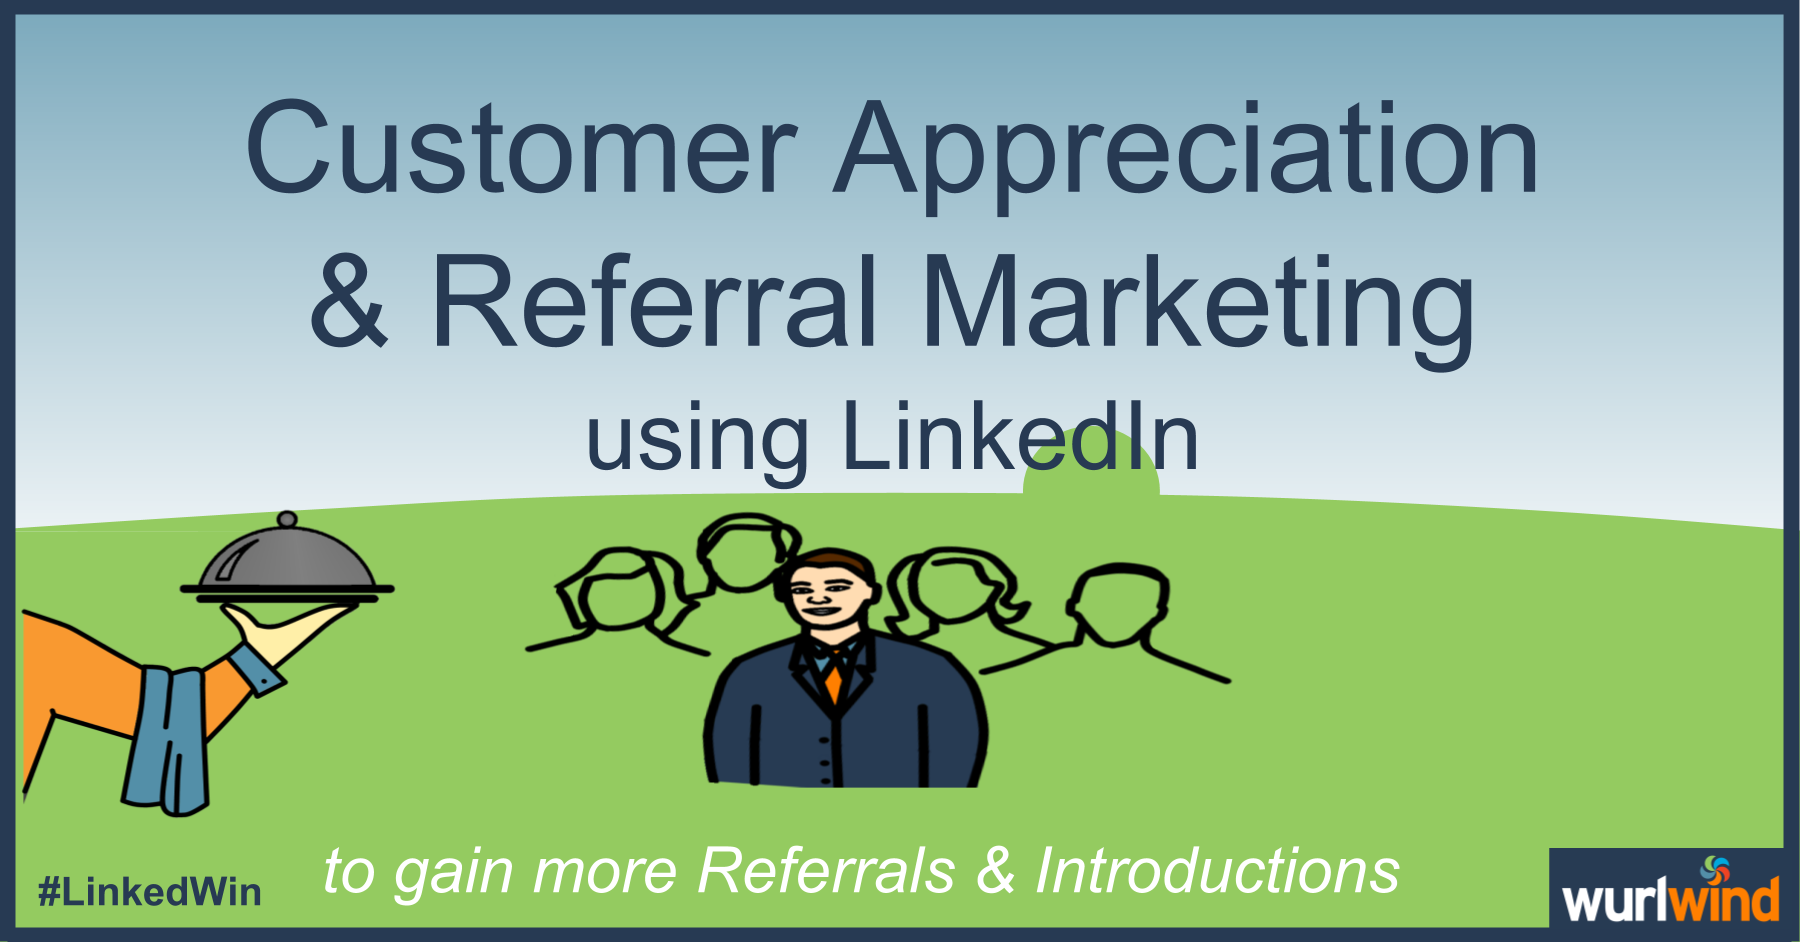 LinkedIn Lead Generation Referral Marketing Image Mark Stonham Wurlwind